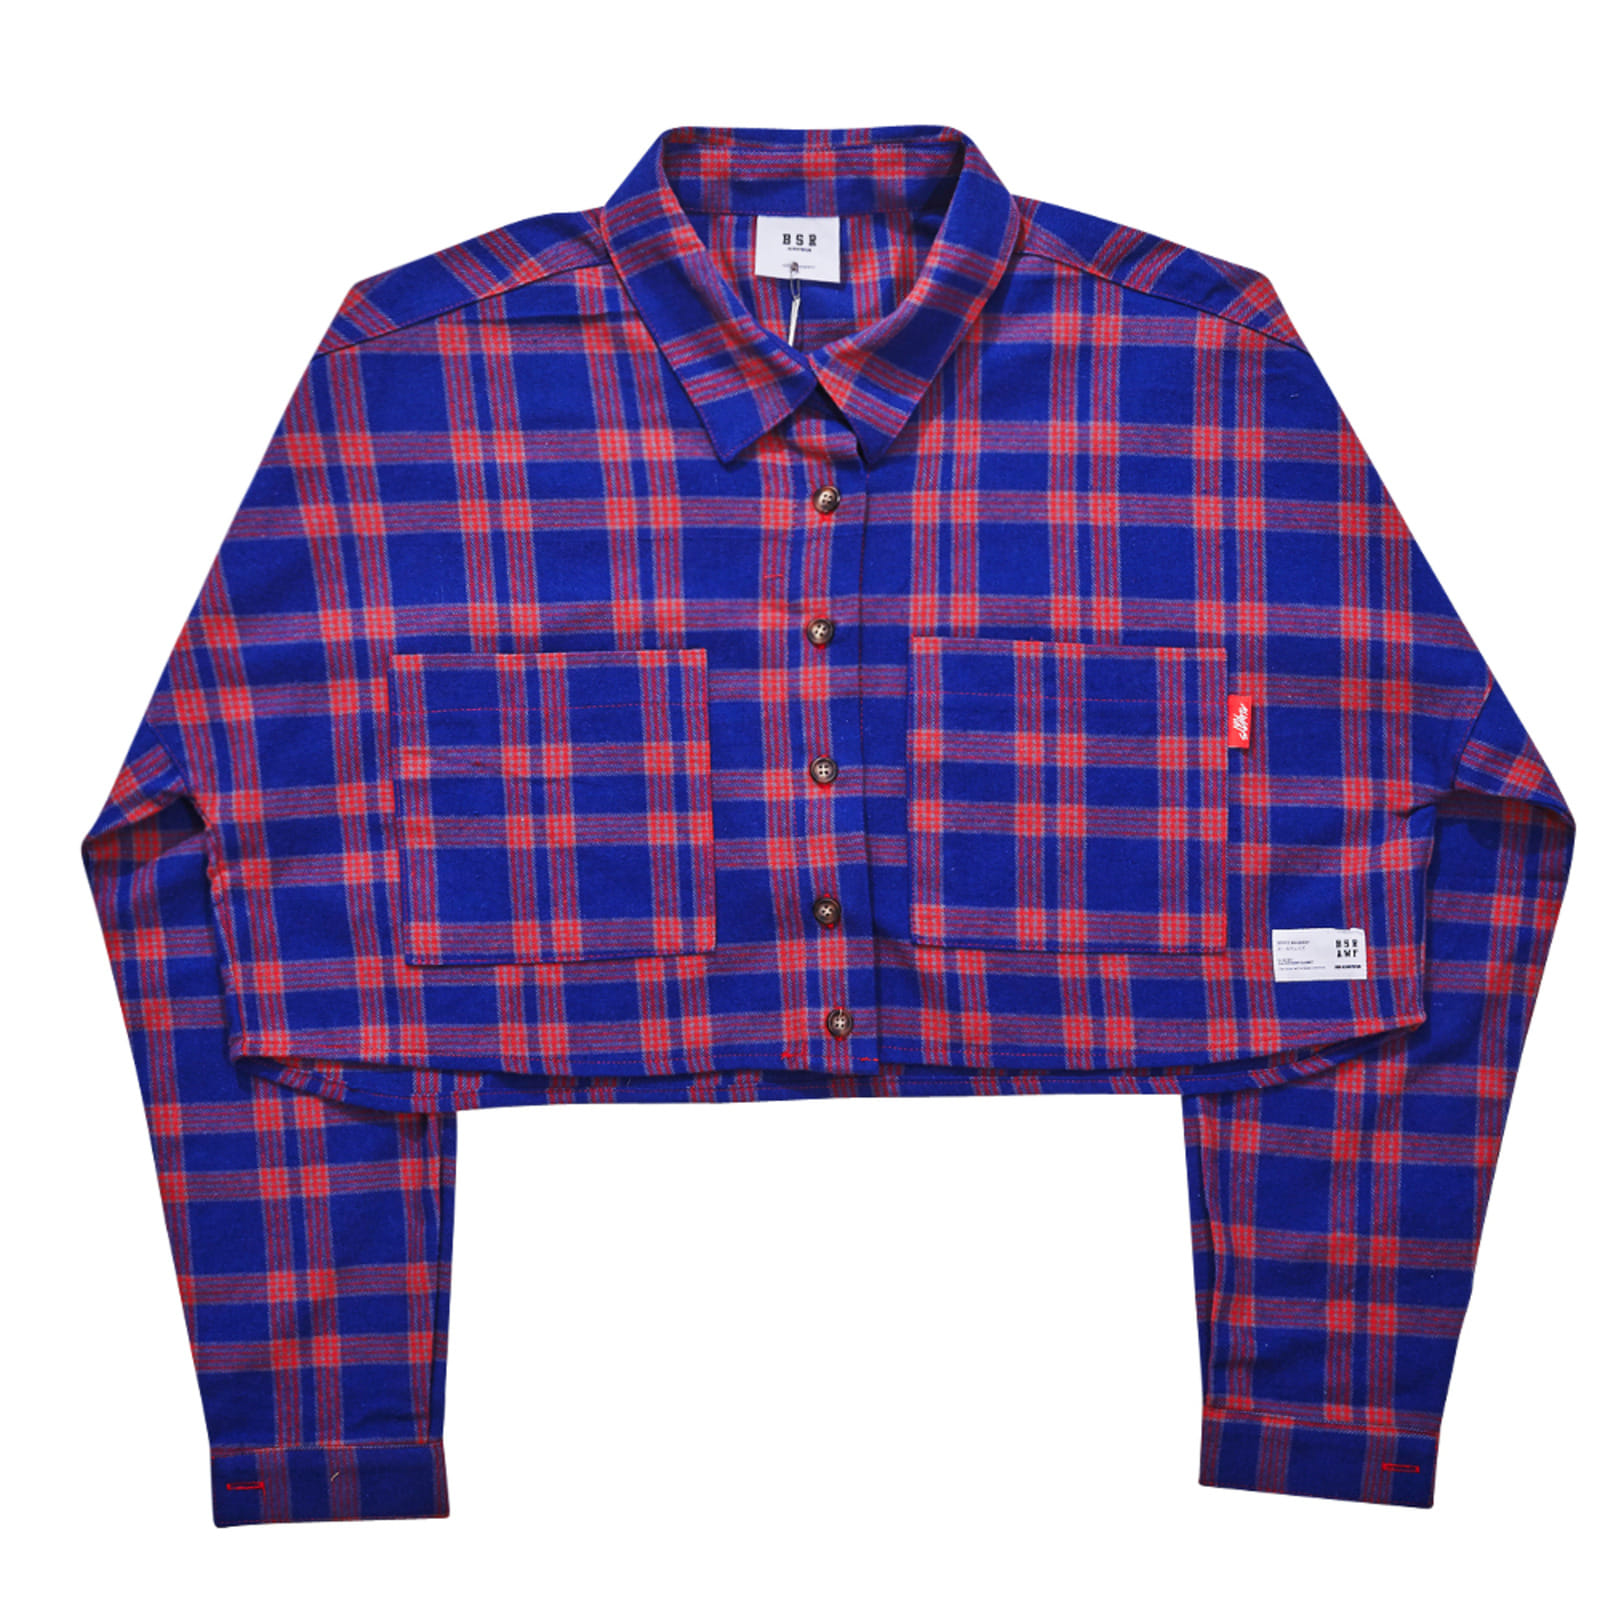 BSRAWF CHECK CROP SHIRT PURPLE